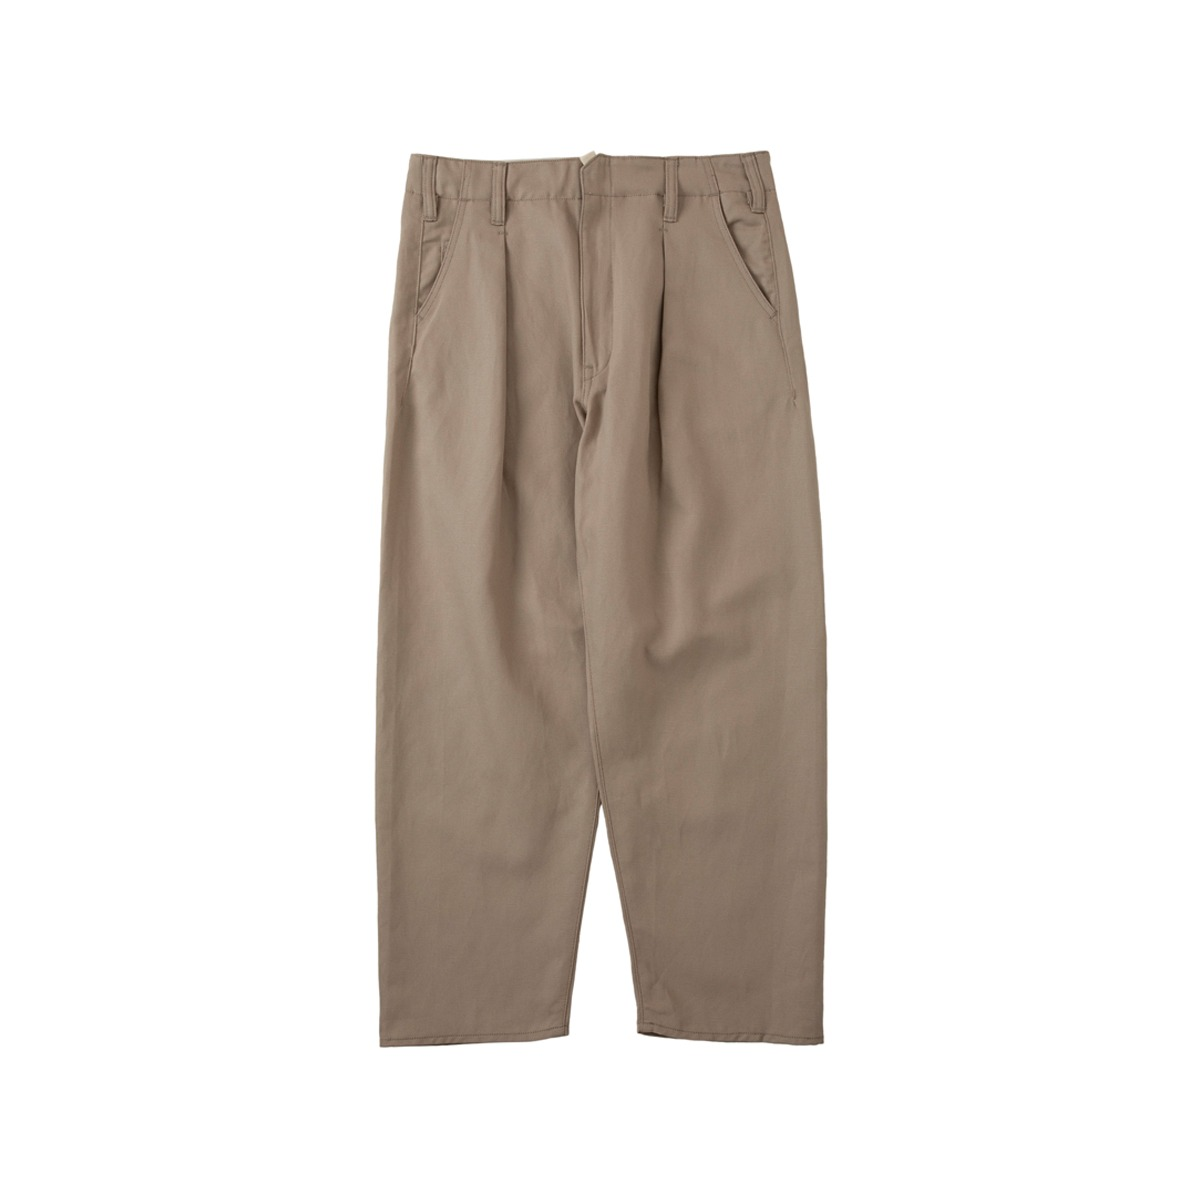 [SABY] BIG PANTS - WHITE LINEN 'GREGE'